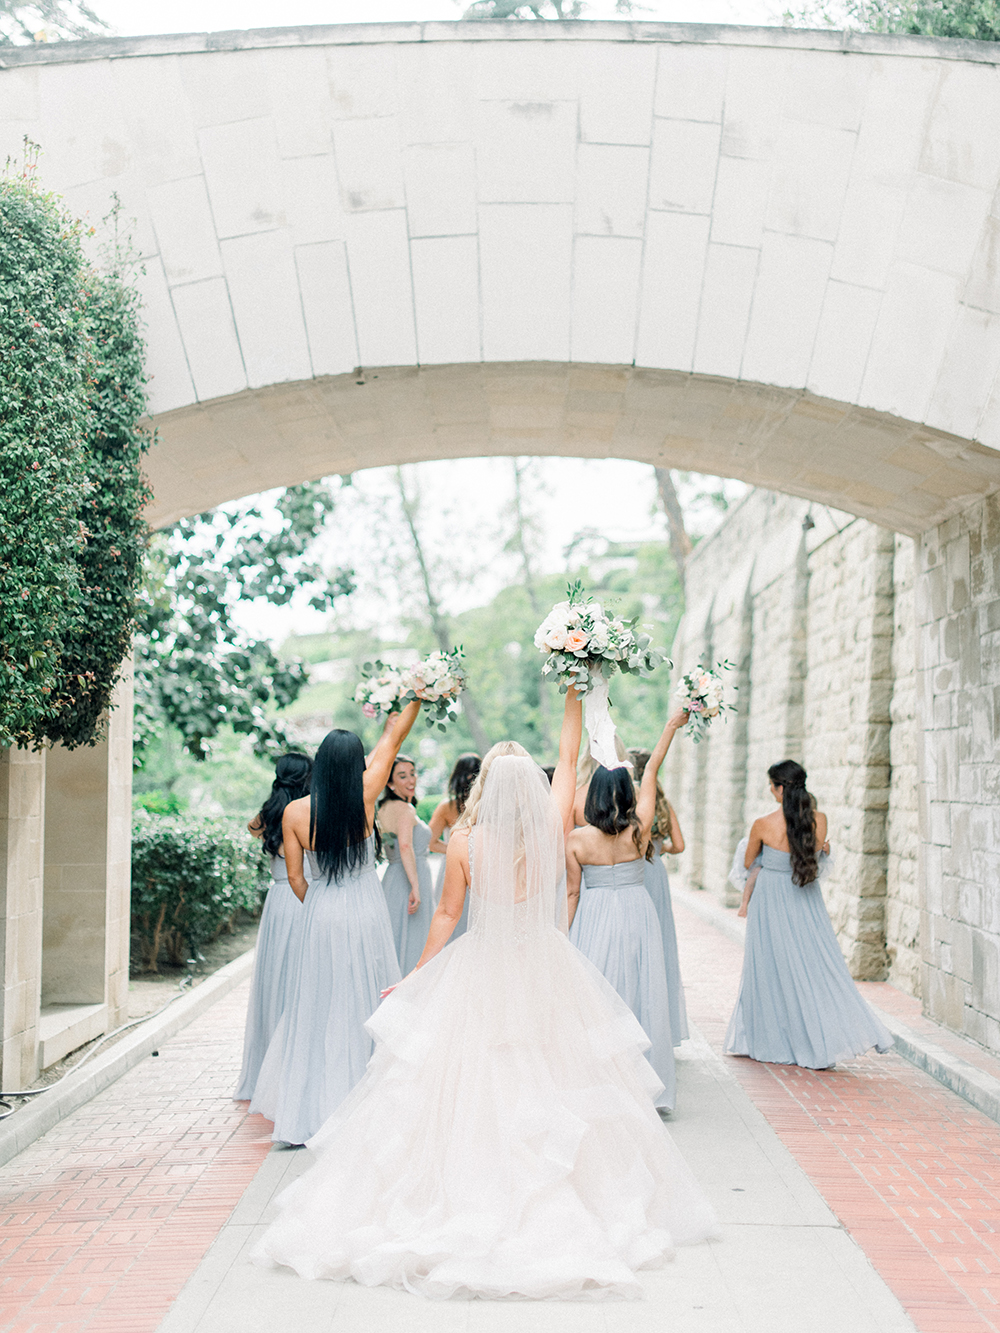 Romantic and Classic Greystone Mansion Wedding by Lucky Day Events Co. x Jordan Galindo Photography // Grey Bridesmaid Dresses